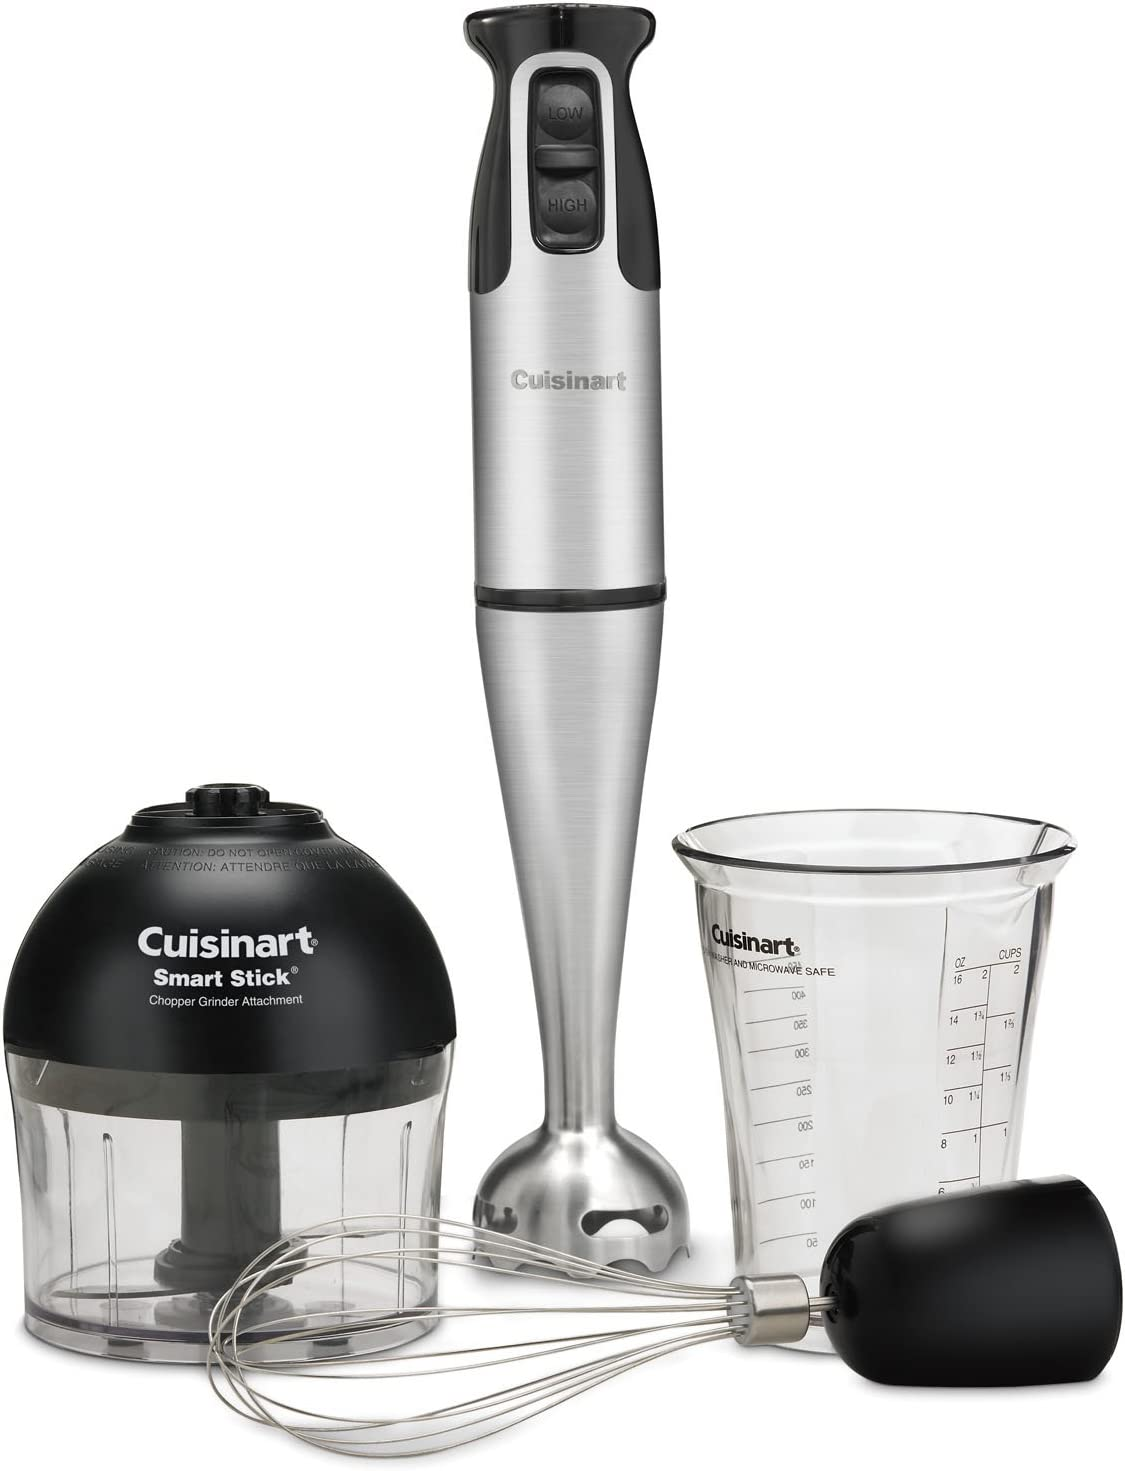 Cuisinart CSB-79 Smart Stick 2 Speed Hand Blender for hummus